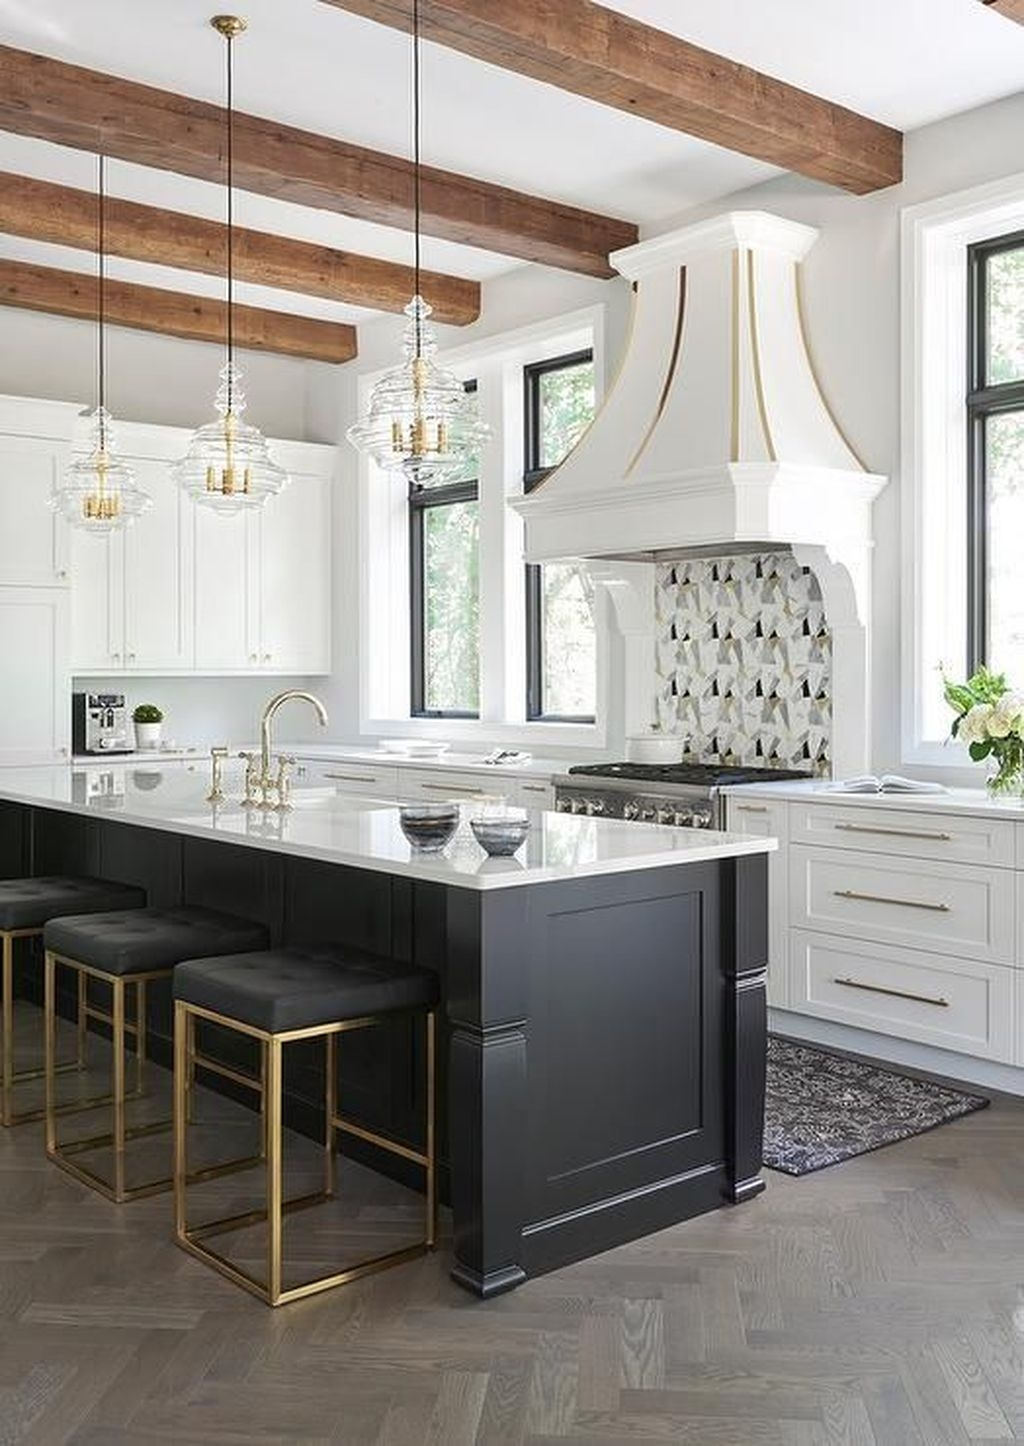 Affordable Black And White Kitchen Cabinets Ideas32